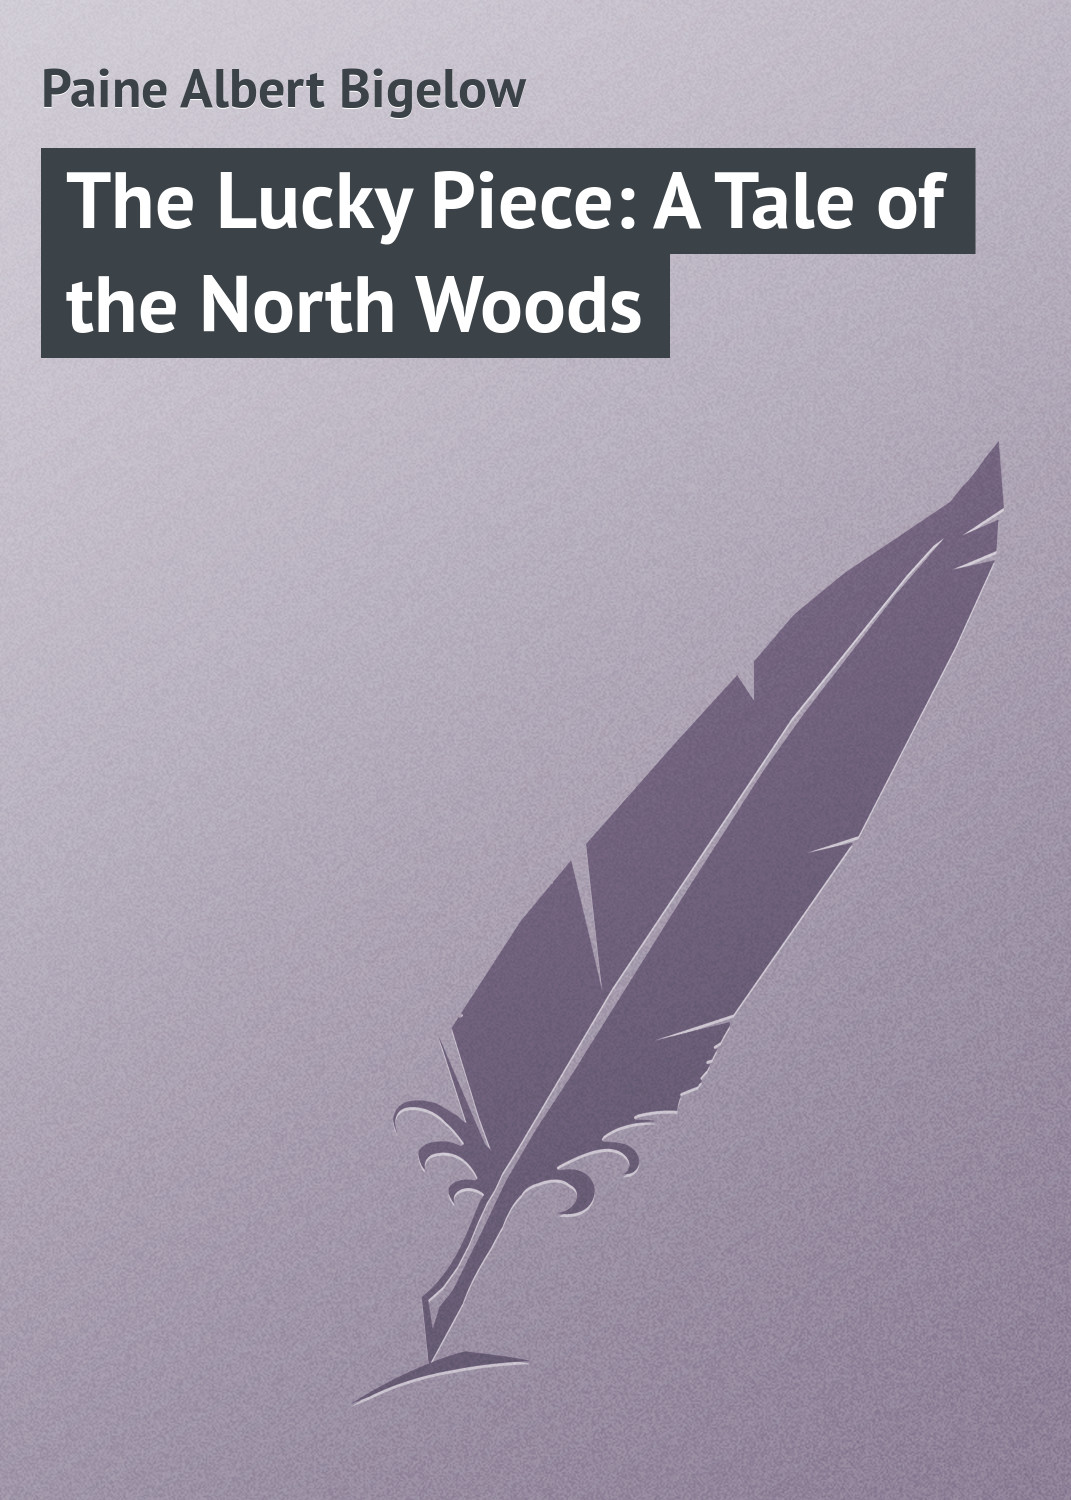 цены Paine Albert Bigelow The Lucky Piece: A Tale of the North Woods